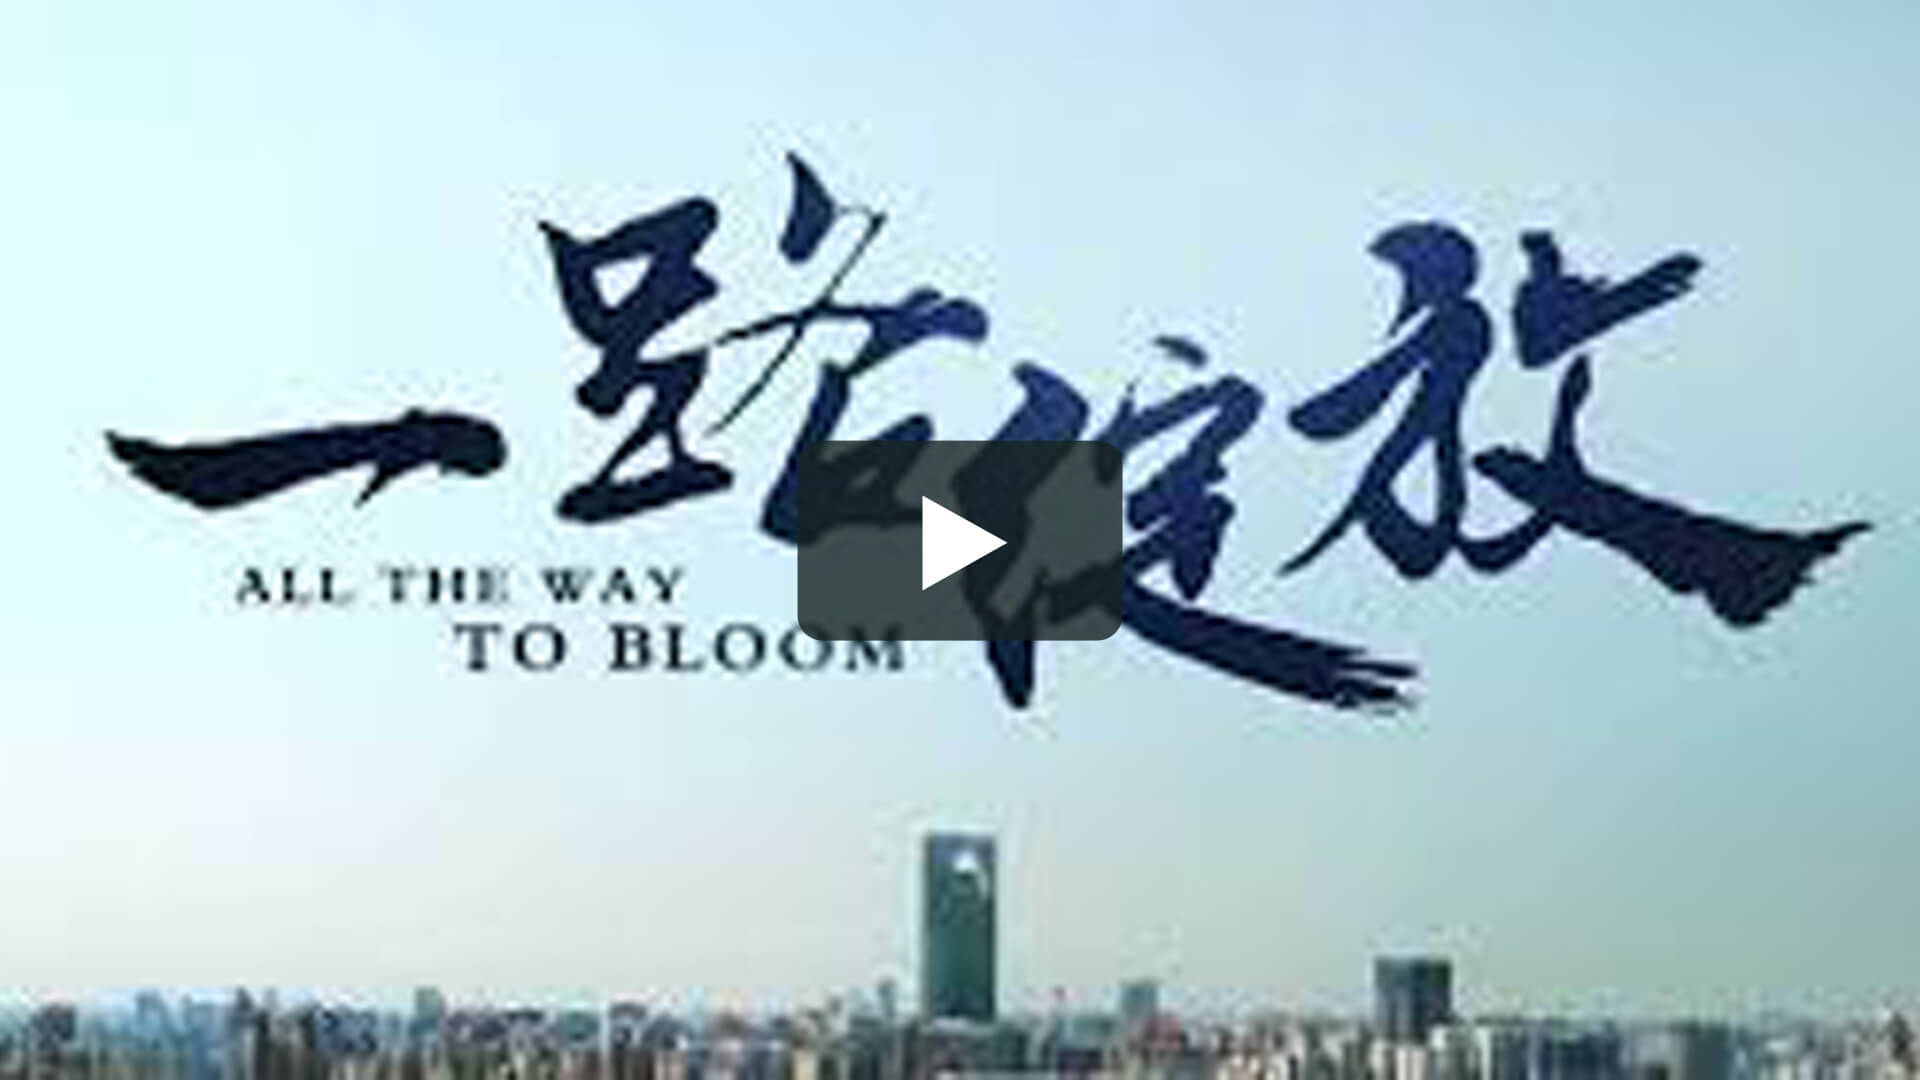 一路綻放 - All the Way to Bloom